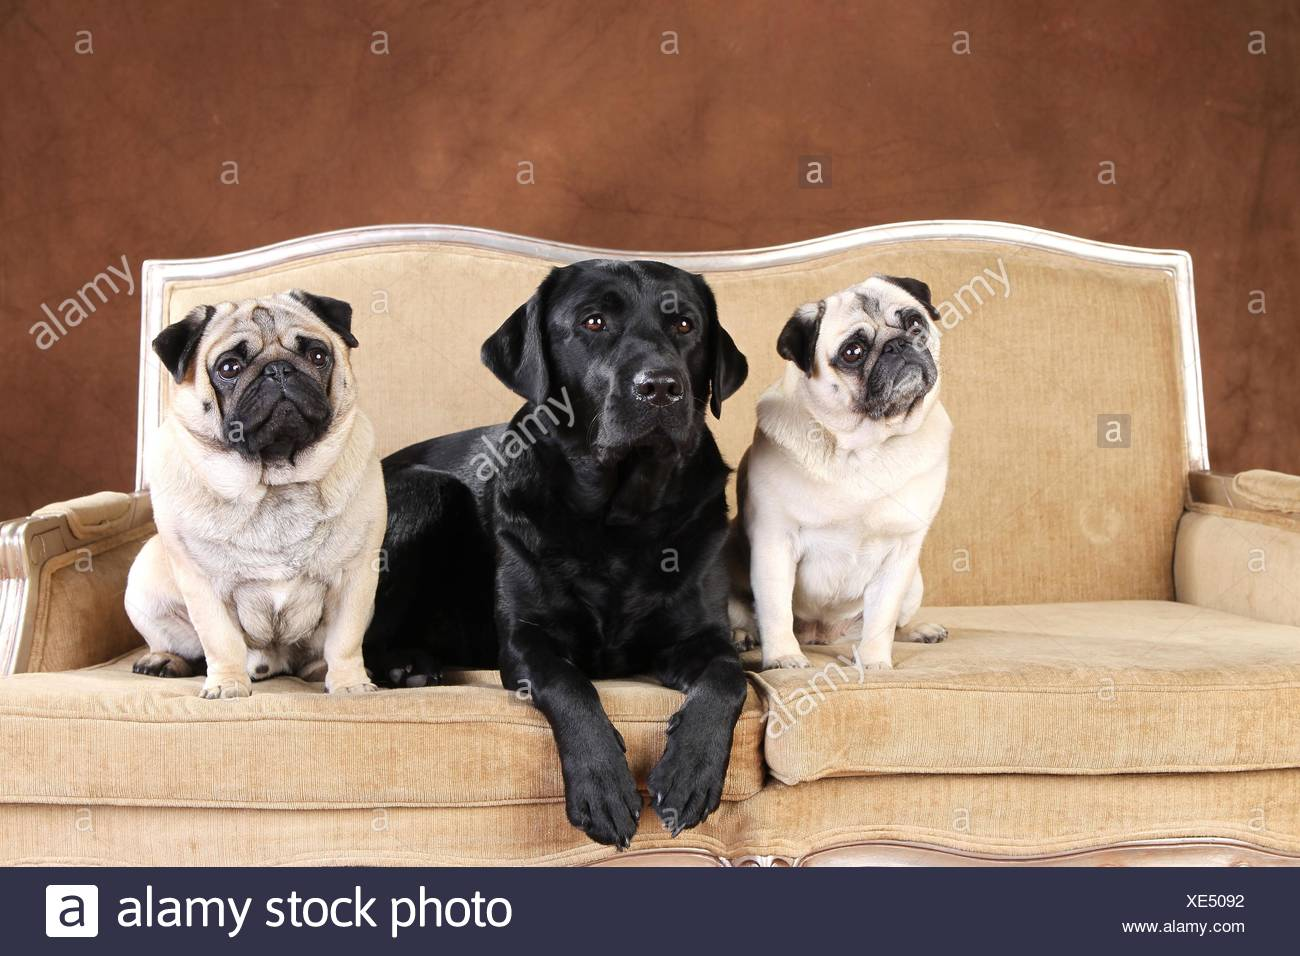 Labrador Retriever and pugs - Stock Image